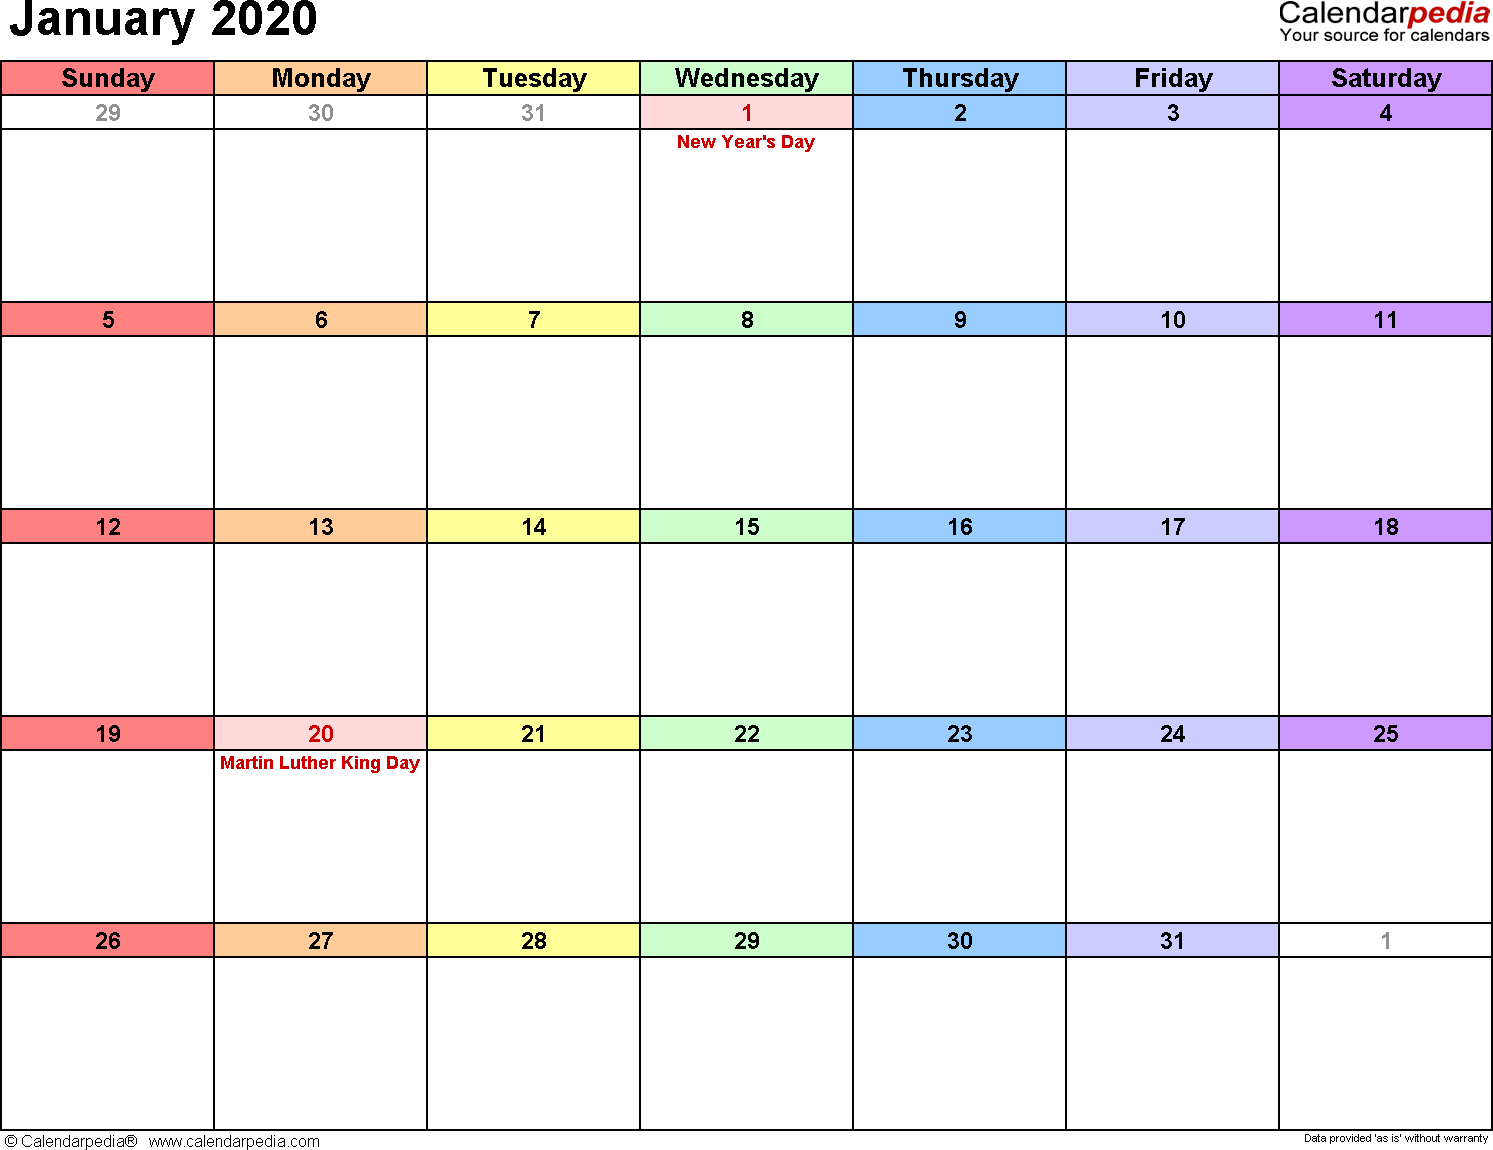 Calendar Events January 2020 January 2020 Calendars for Word, Excel & PDF